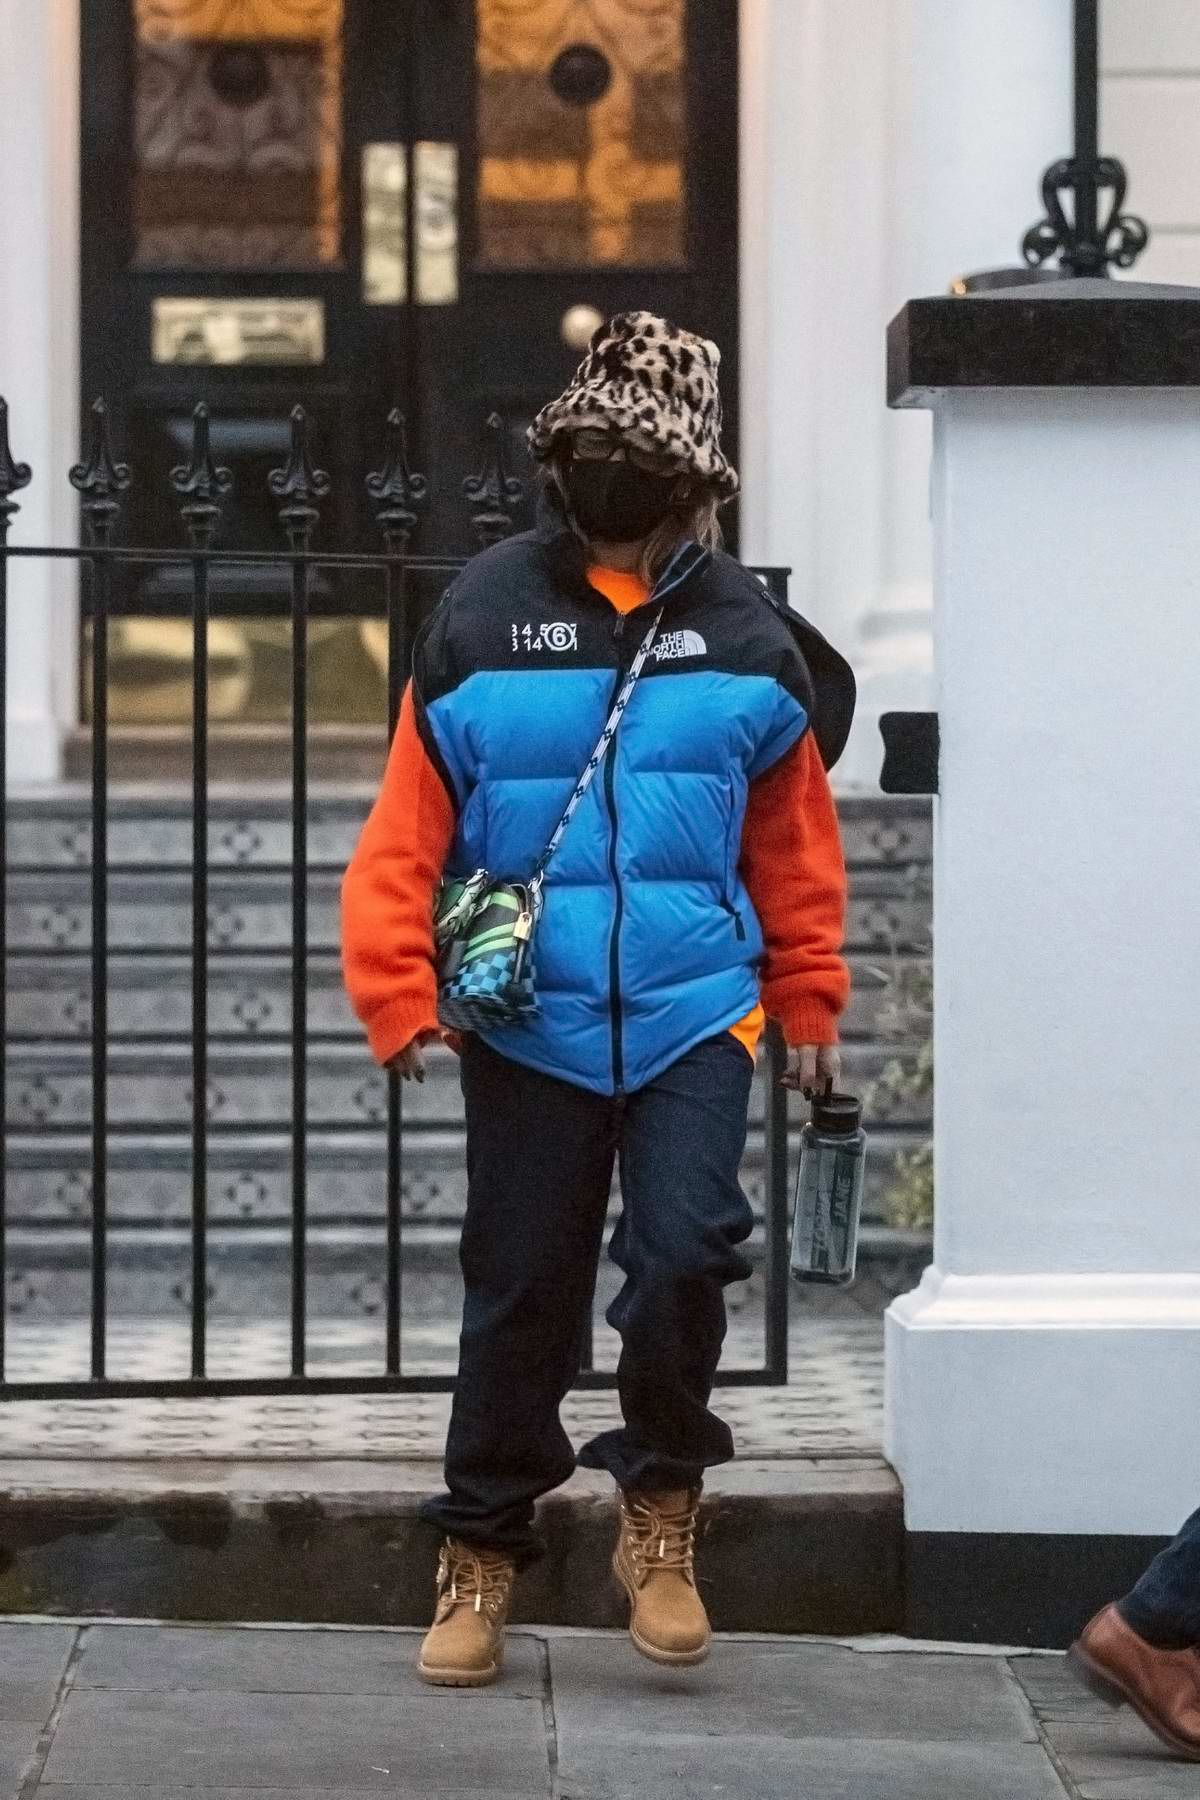 Rita Ora bundles up in colorful winter clothing as she steps out on a chilly day in London, UK